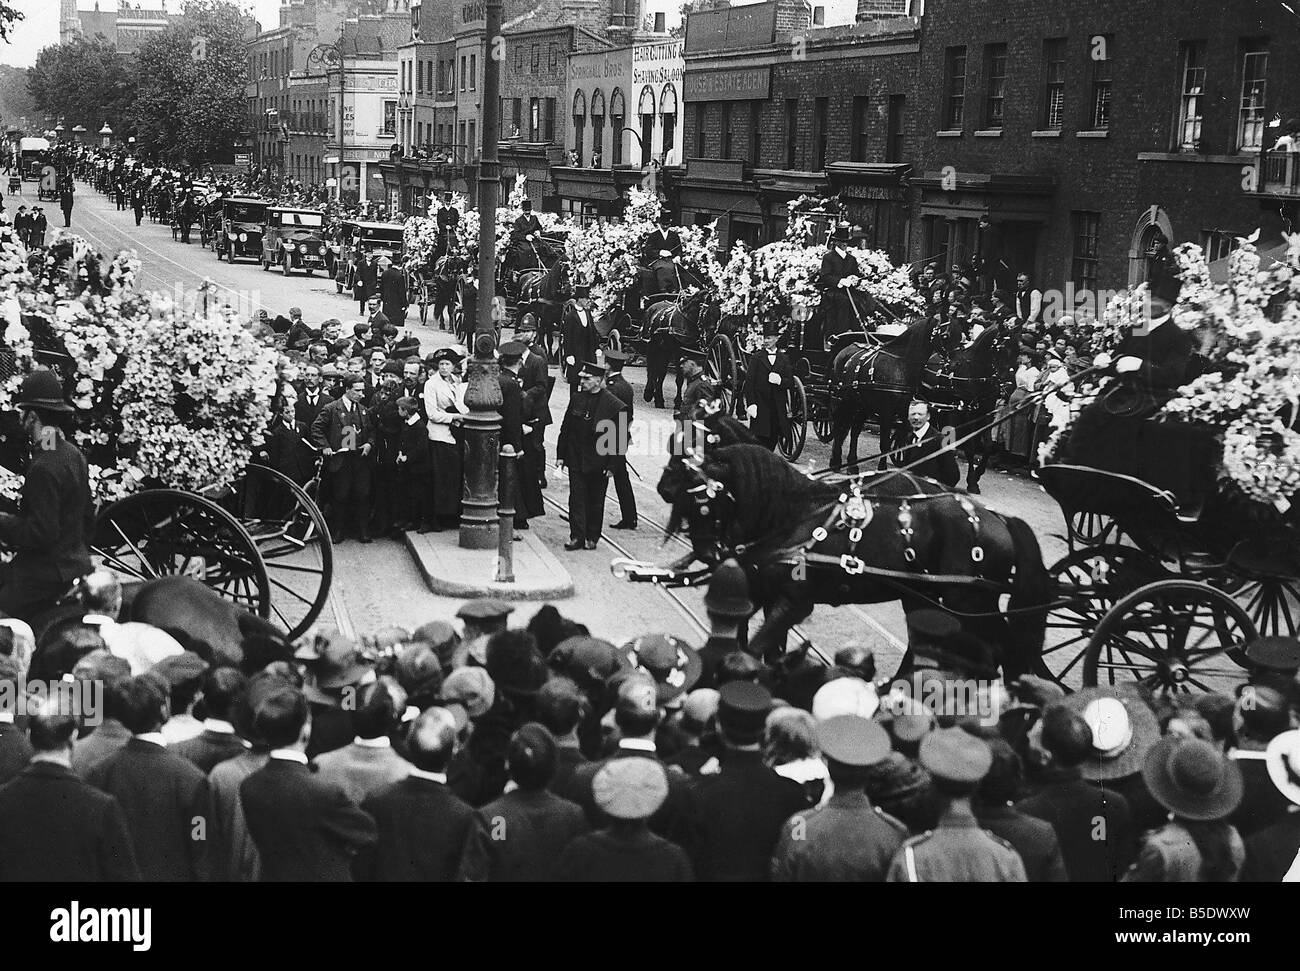 World War One A procession of horse drawn hearses carrying school children killed during an air raid over London - Stock Image